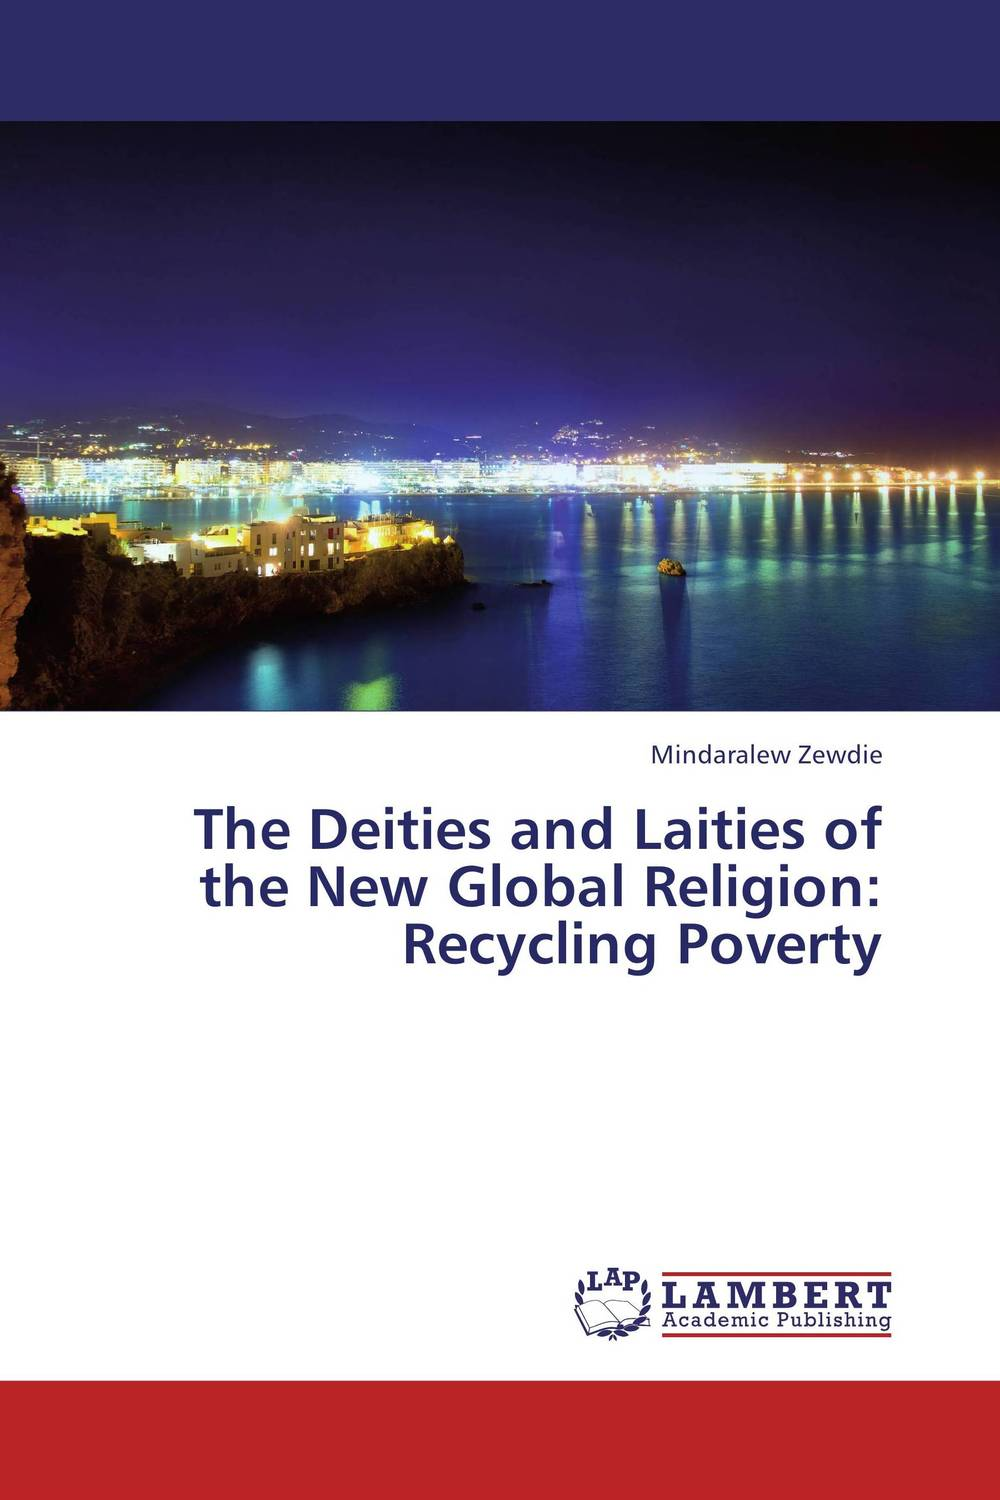 цена на The Deities and Laities of the New Global Religion: Recycling Poverty